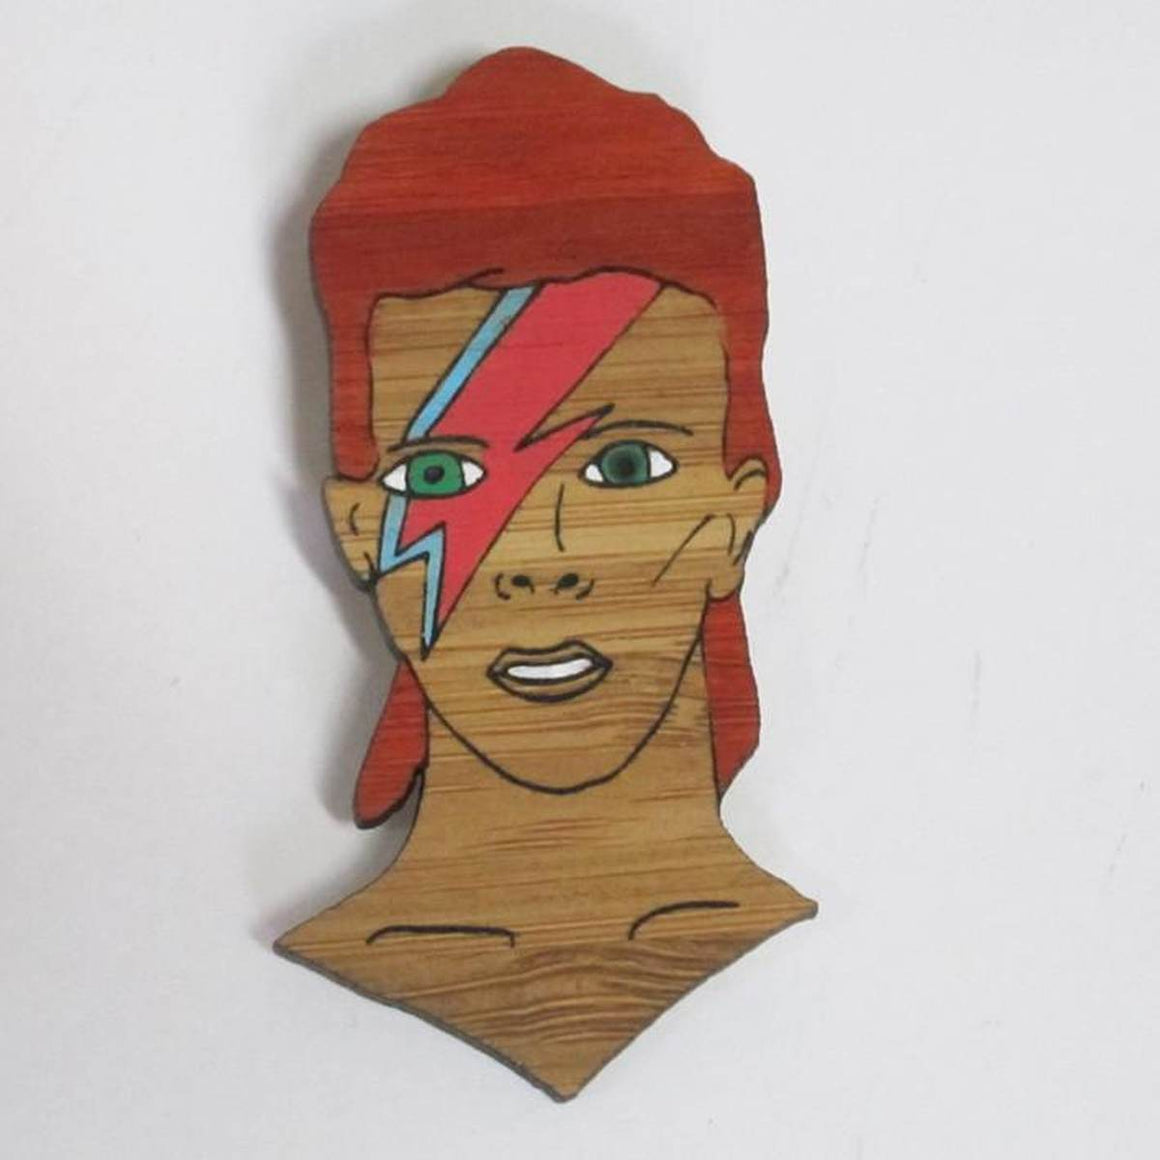 A brooch featuring a portrait of singer songwriter David Bowie. He is shown from the neck up, with his iconic red hair and a blue and red lightning bold painted across his face..Made from bamboo wood and hand painted.